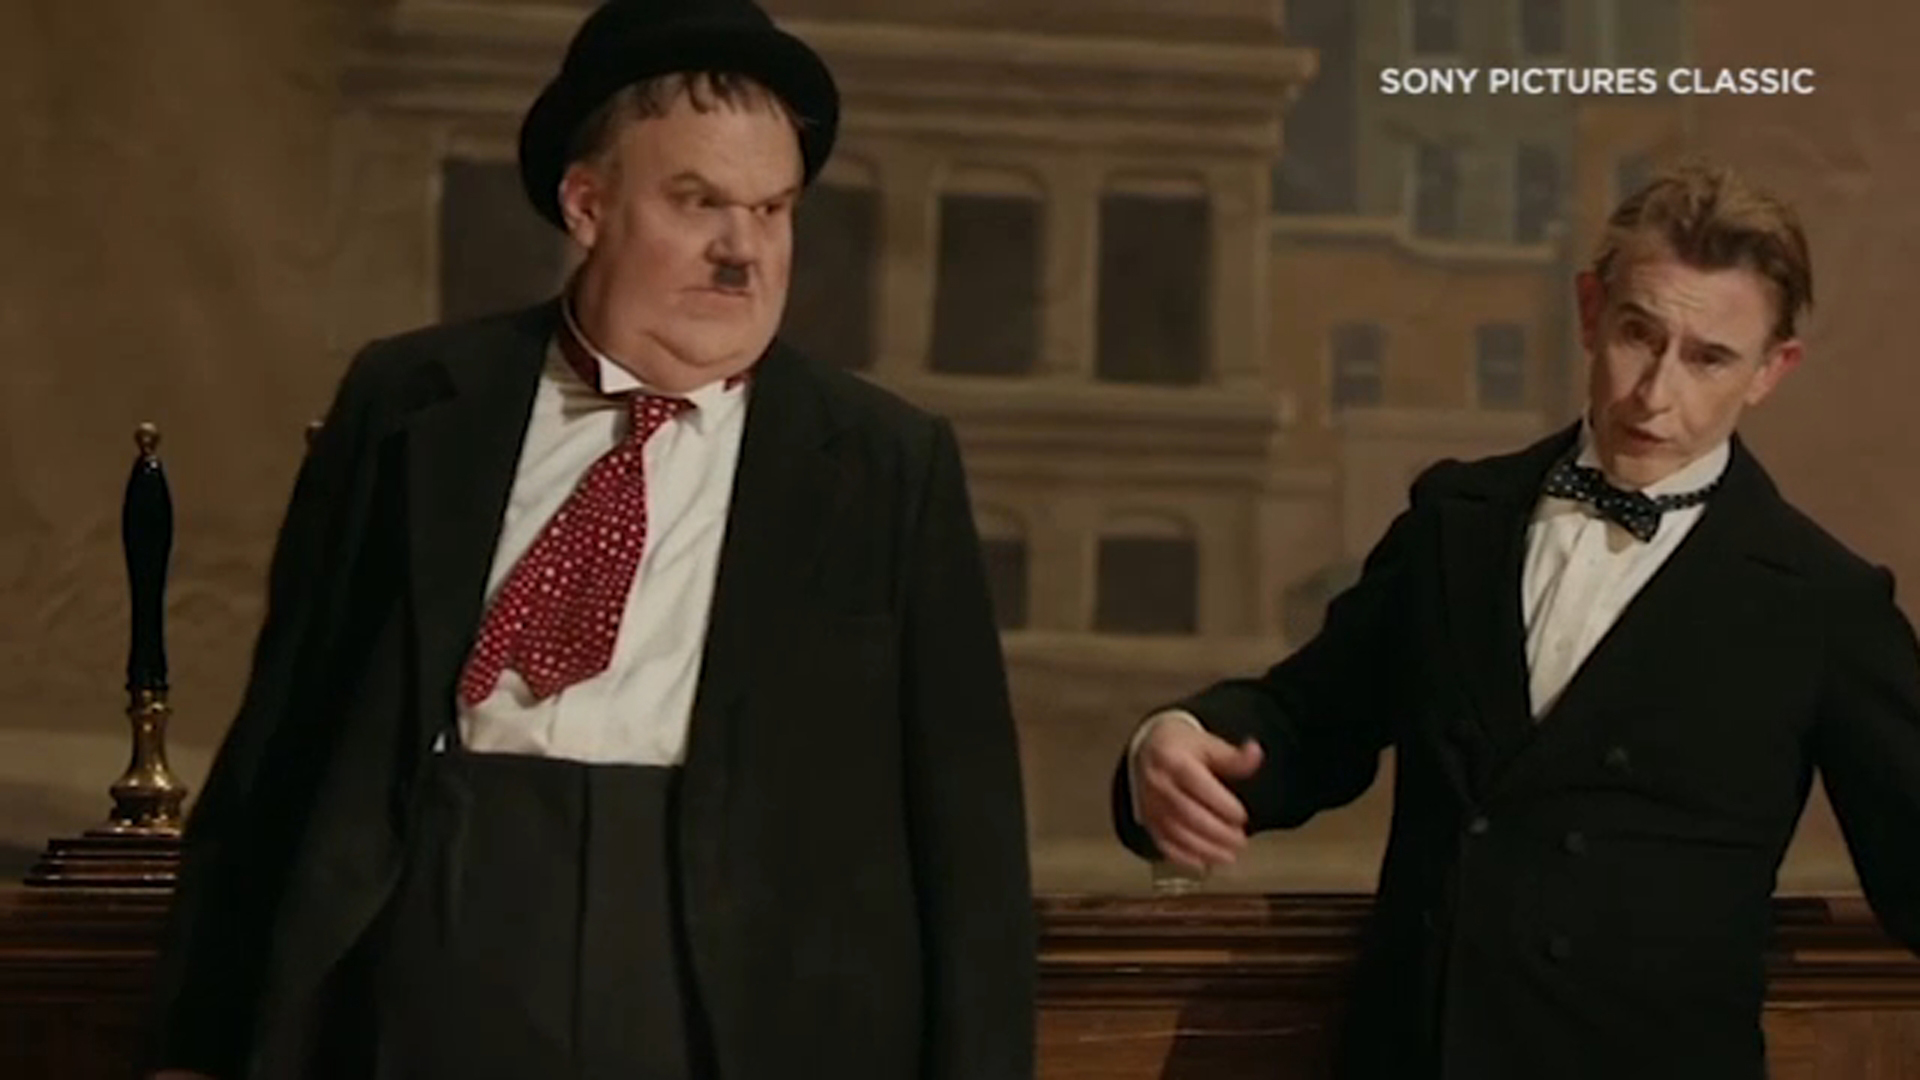 Actors John C. Reilly and Steve Coogan transform into classic comedy duo Laurel and Hardy in the new movie Stan and Ollie, thanks to top makeup wizards.